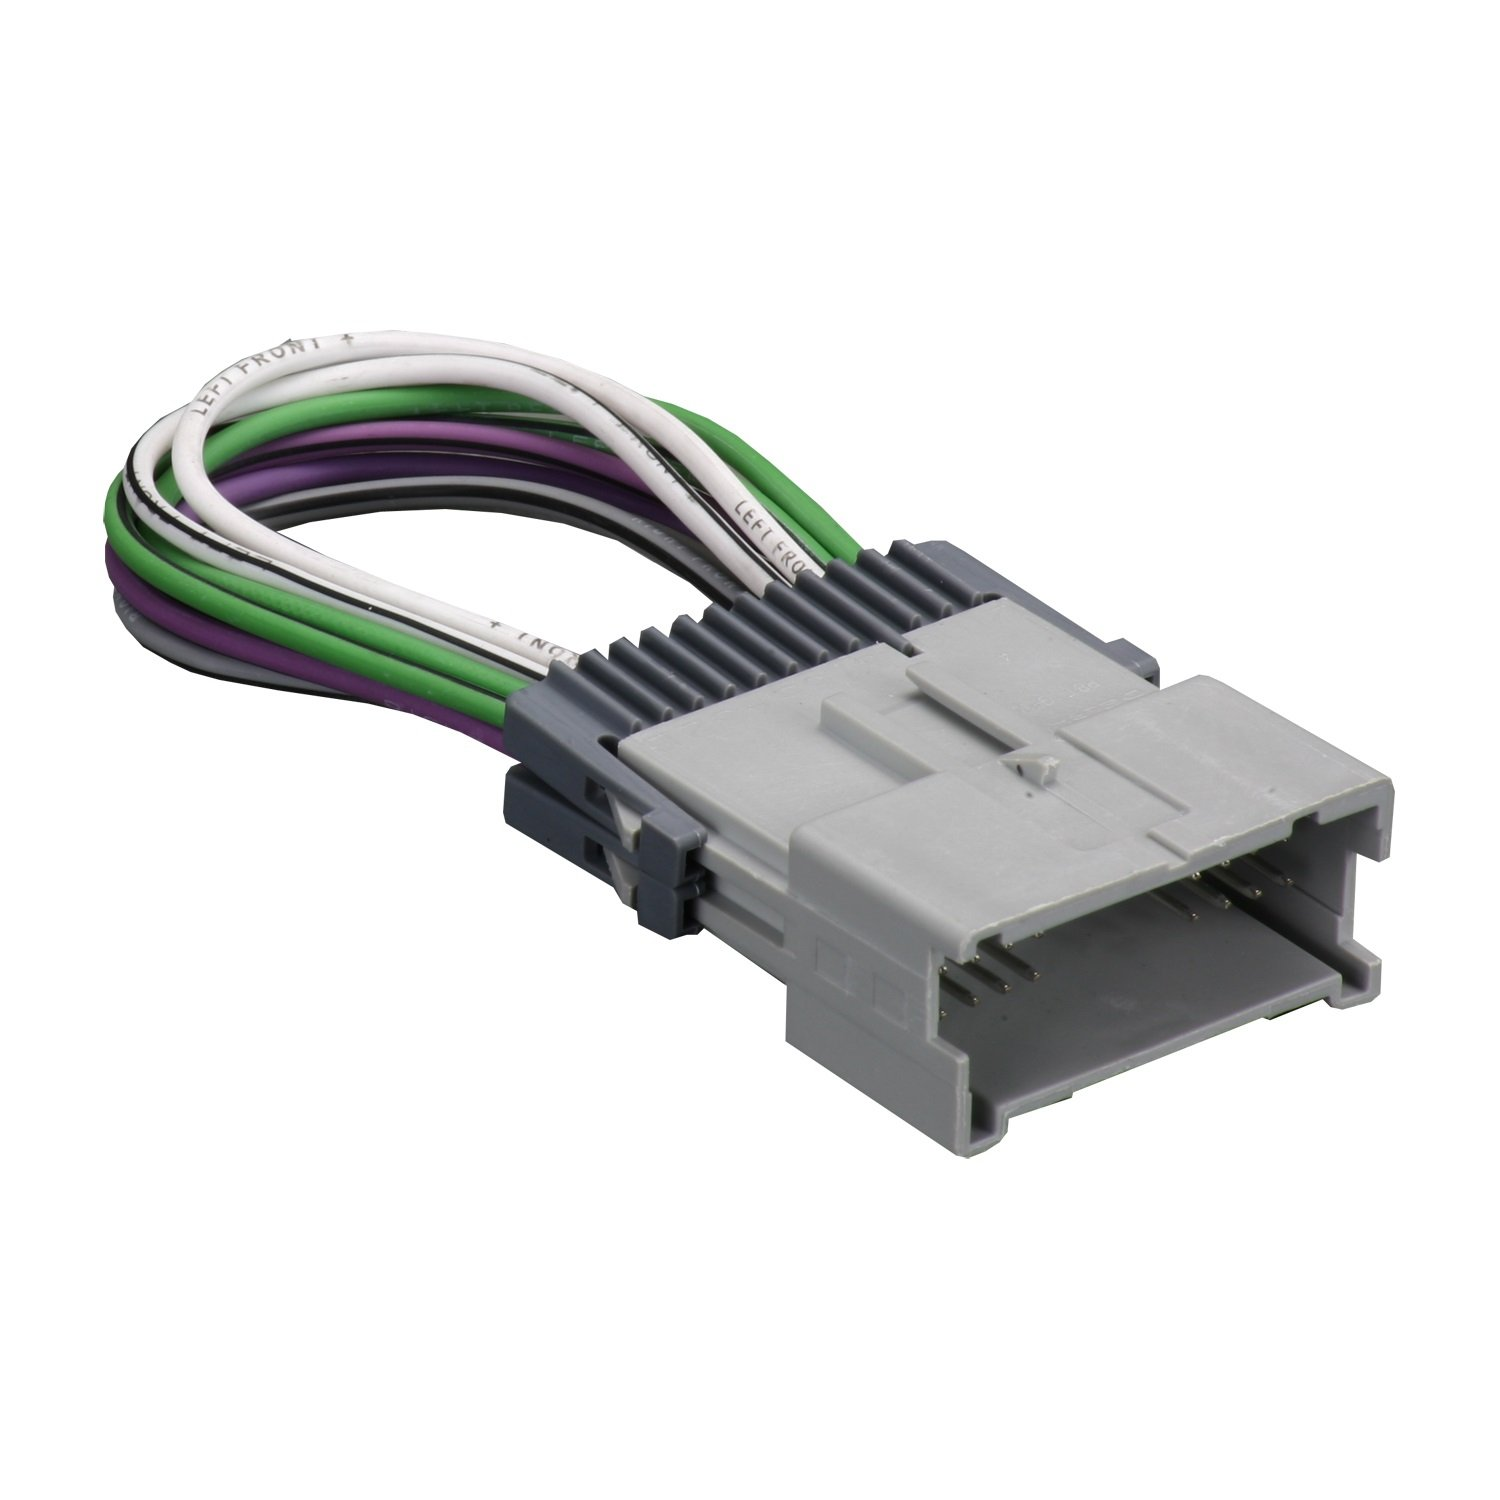 61gON5fOIYL._SL1500_ amazon com metra 70 2021 amplifier integration harness for 2000 2005 impala factory amp wiring diagram at bayanpartner.co